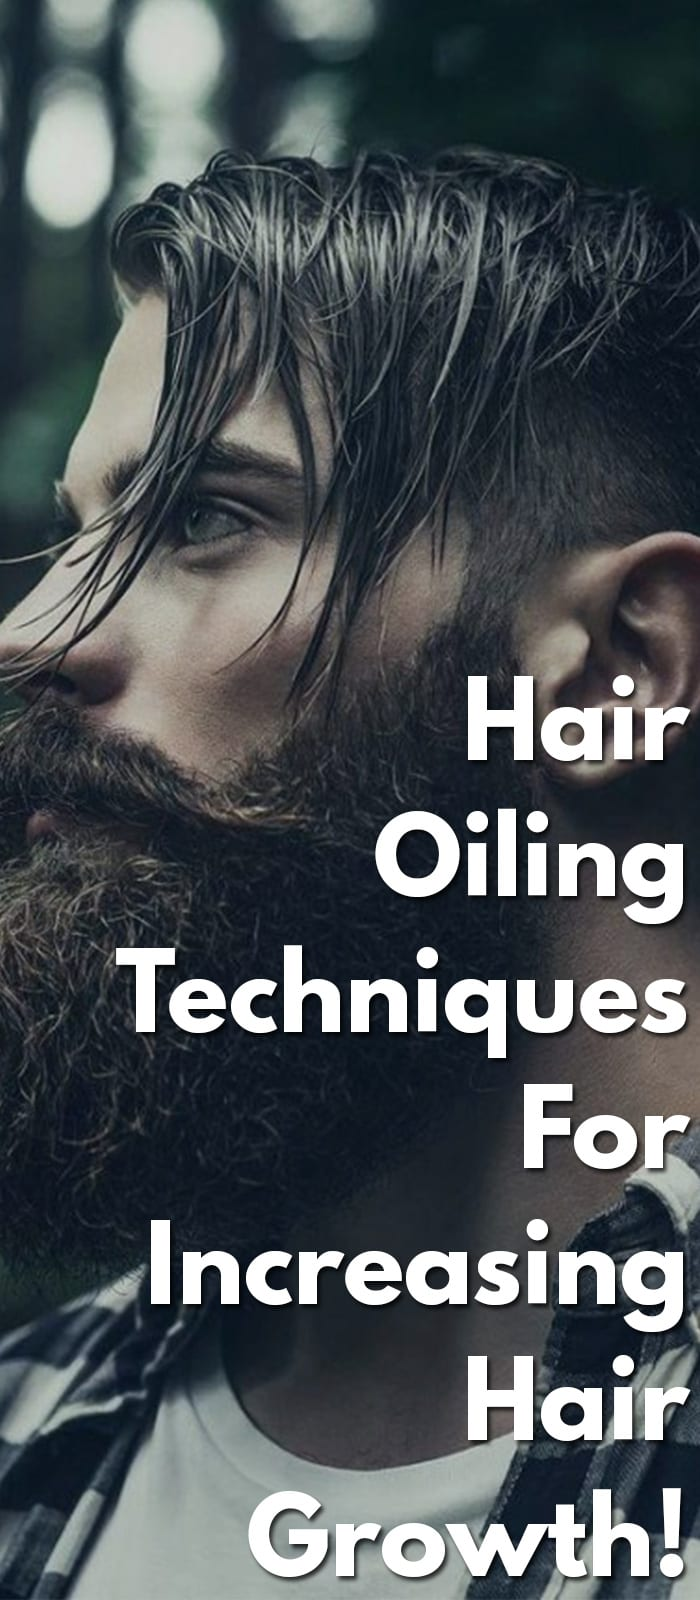 Hair-Oiling-Techniques-For-Increasing-Hair-Growth!.